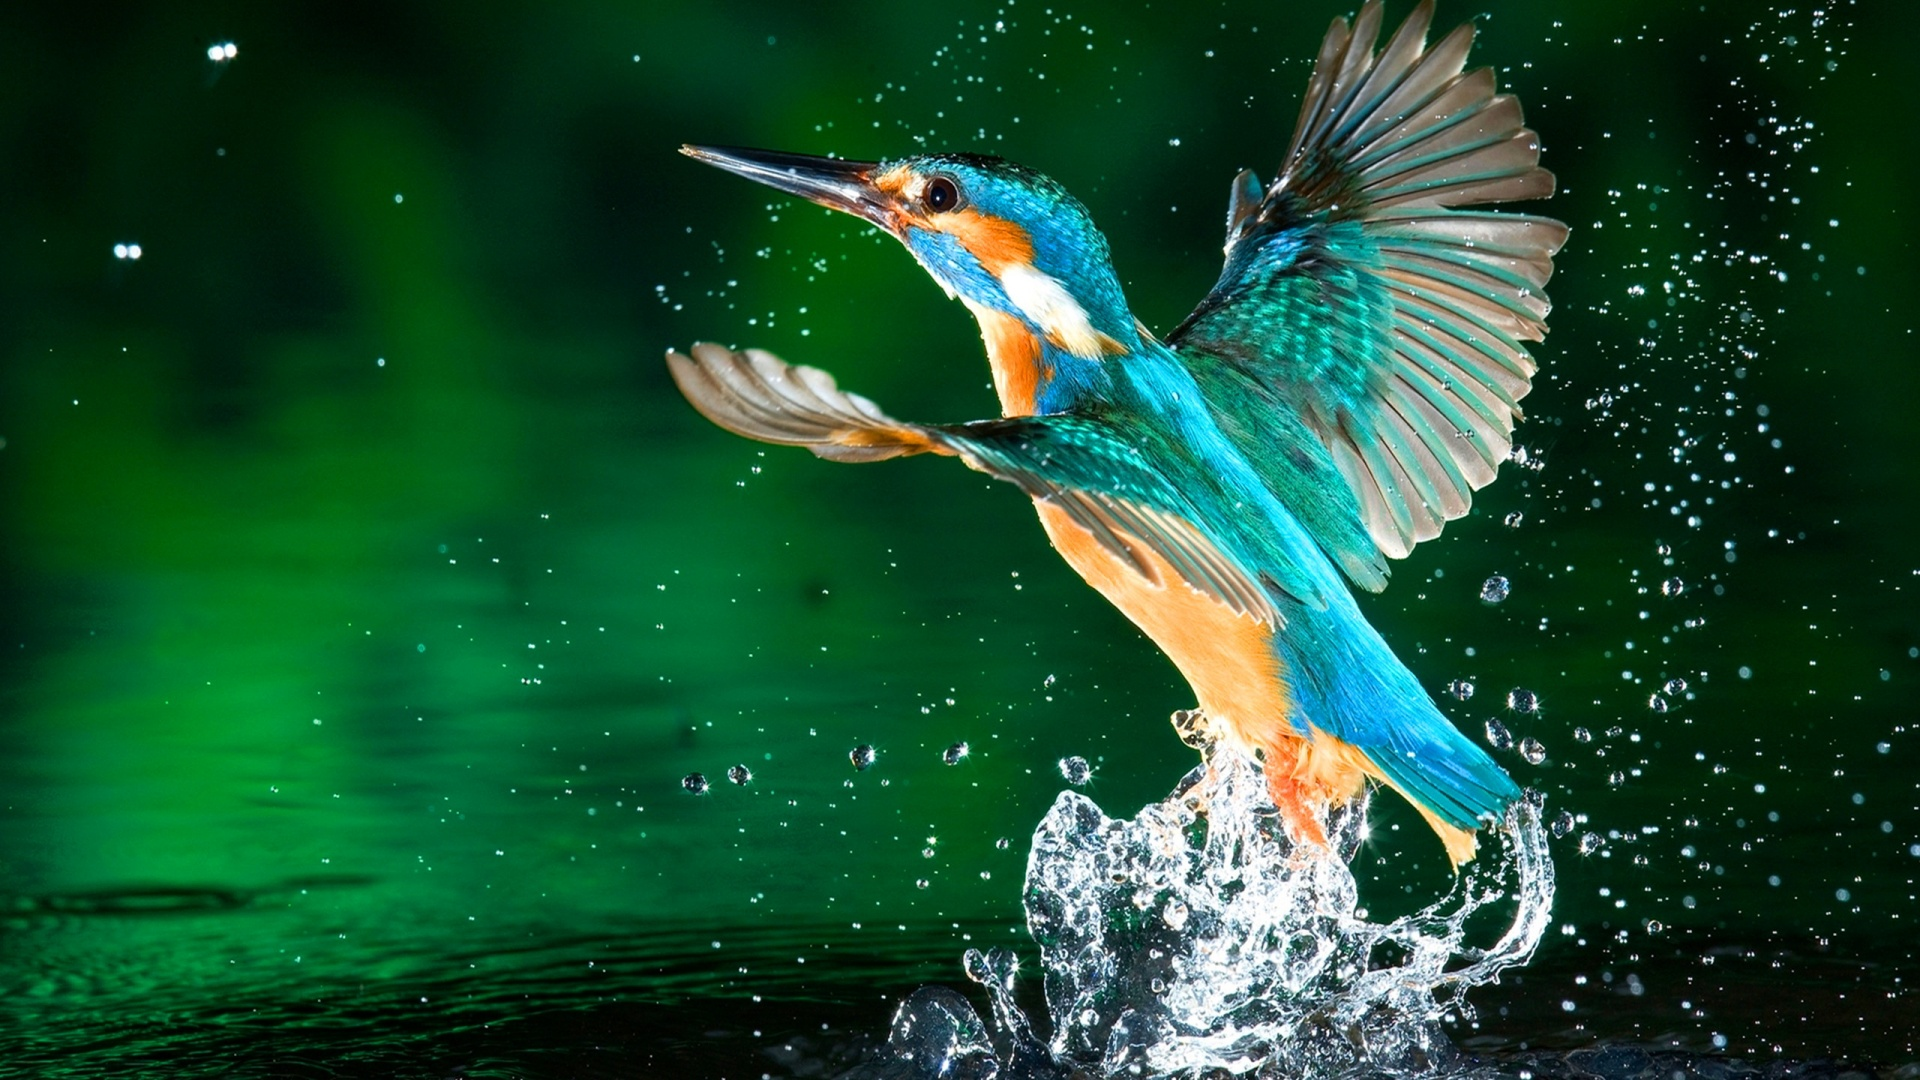 Best Amazing D Animated Hd Wallpapers Techblogstop 1920x1080